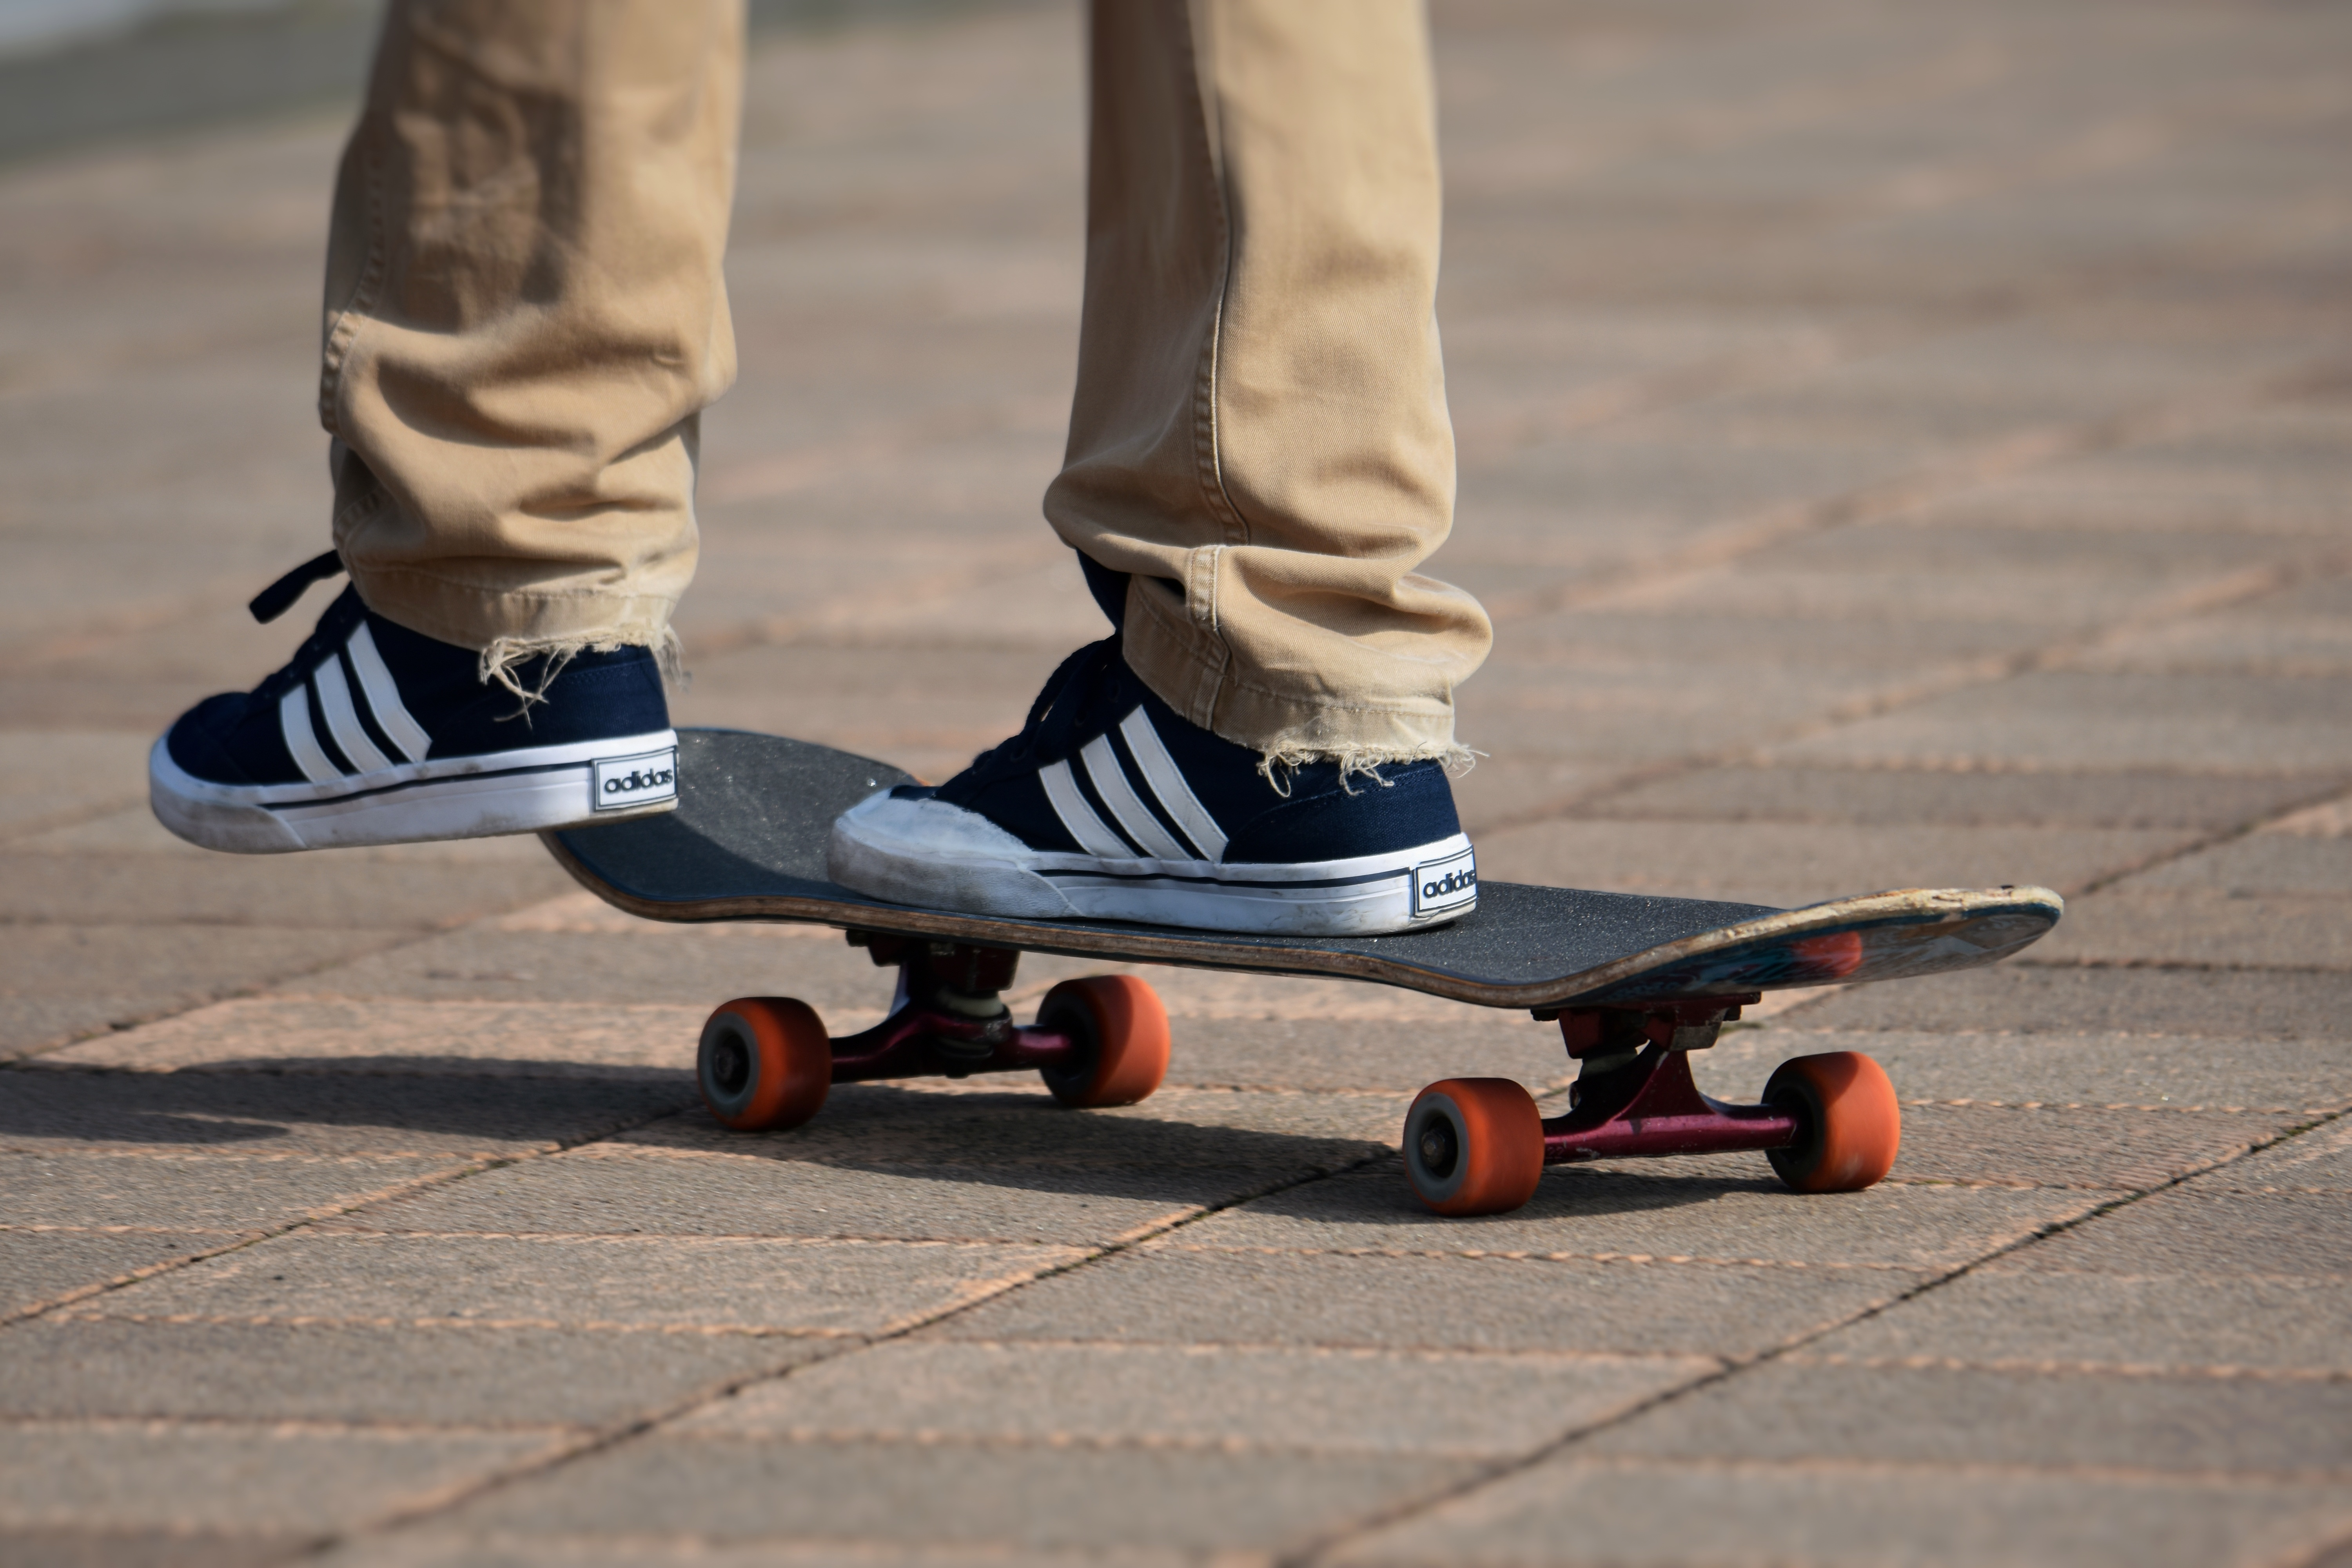 Persons feet on a skateboard in the air